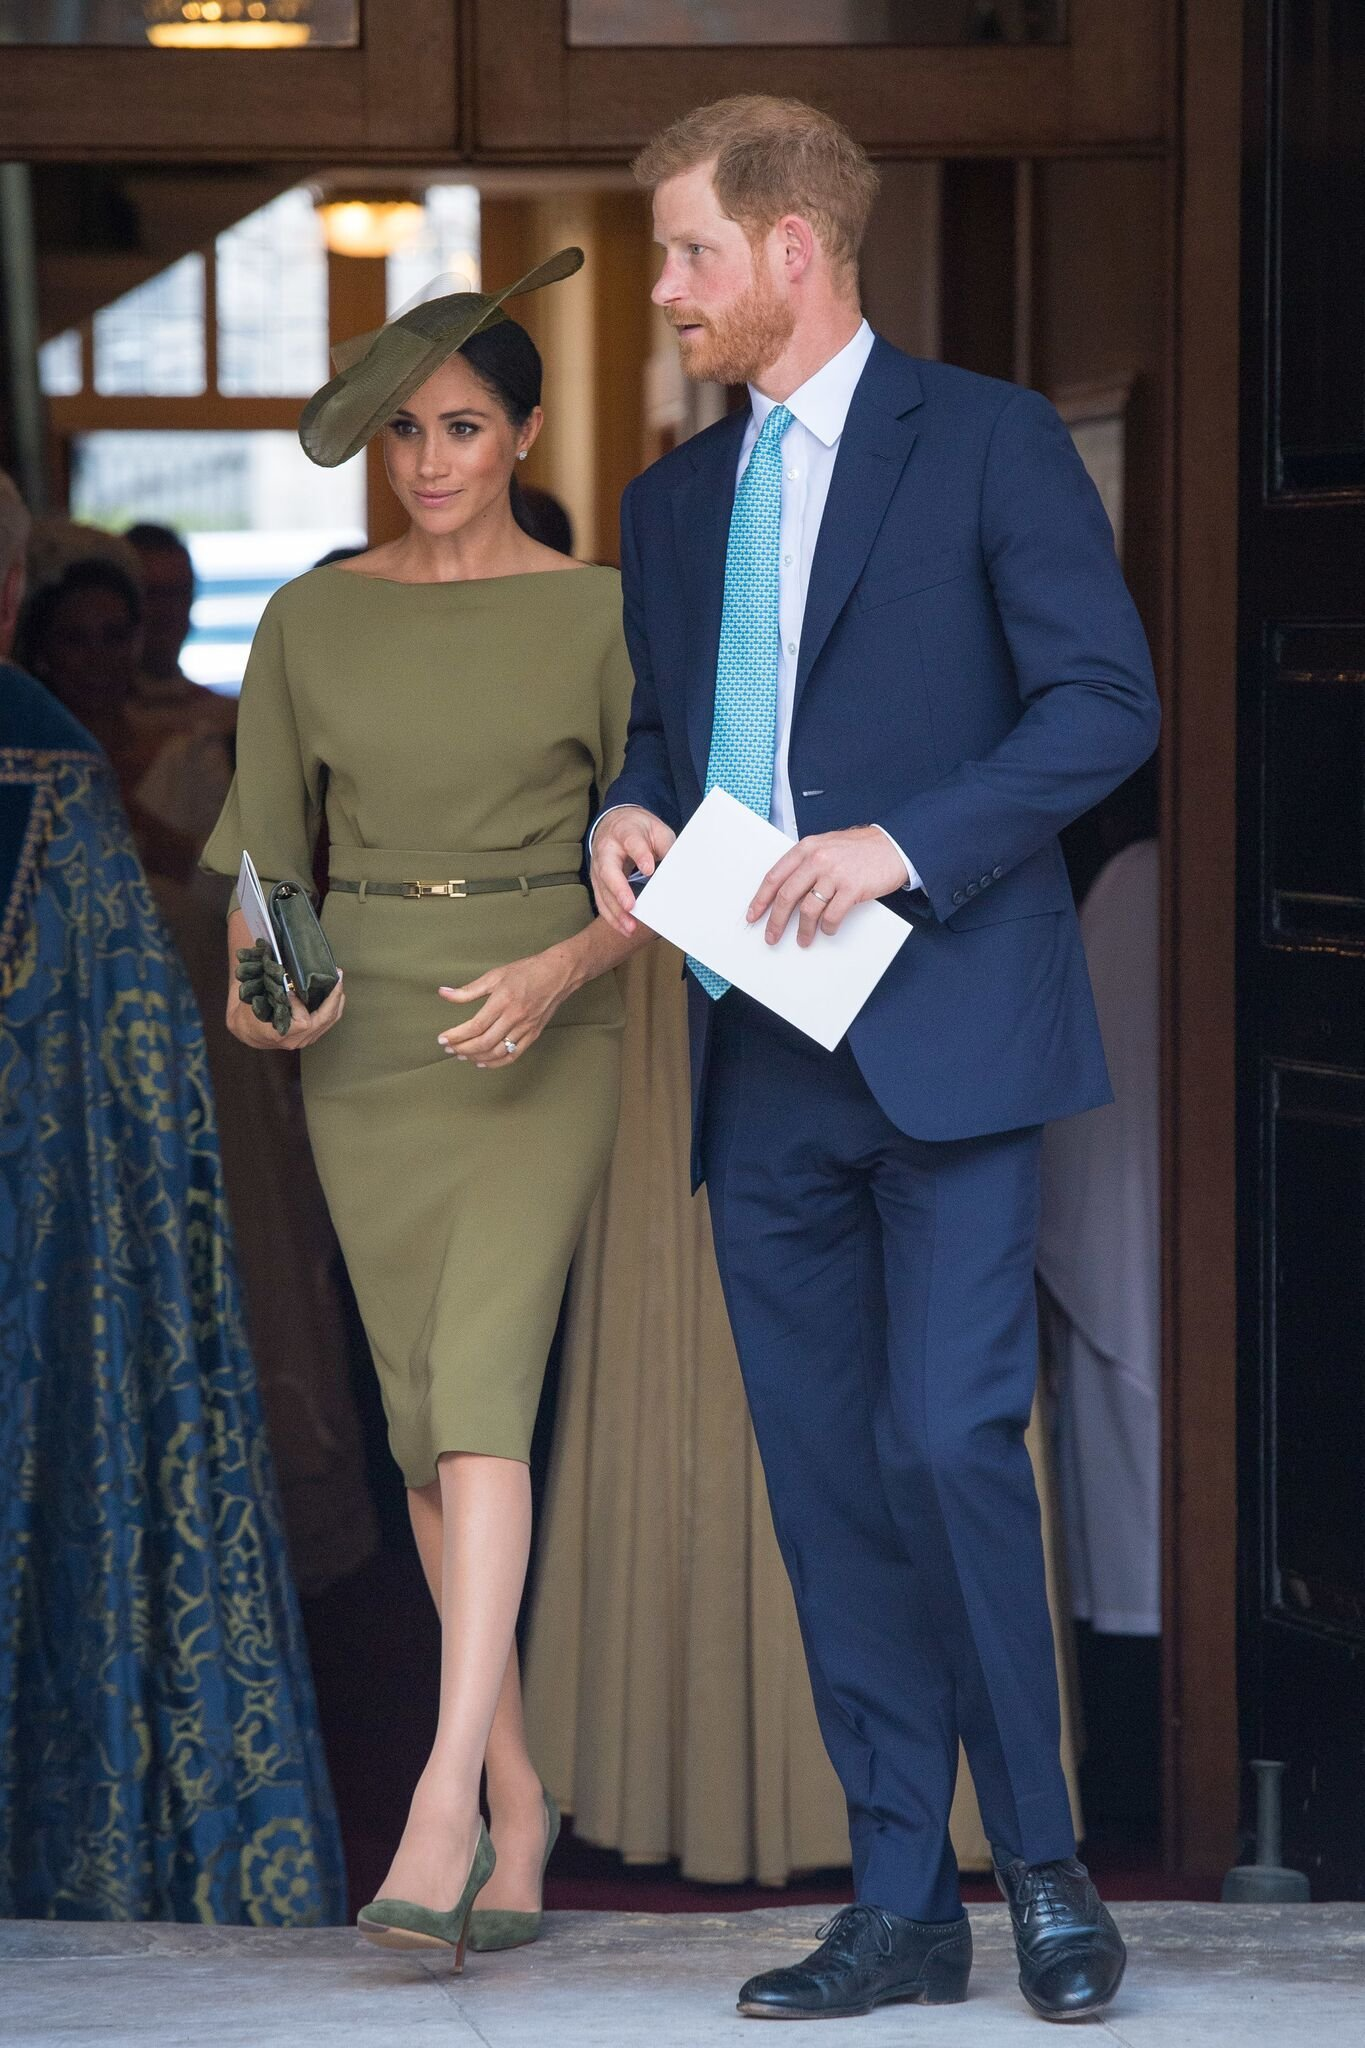 The Duke and Duchess of Sussex depart after attending the christening of Prince Louis at the Chapel Royal, St James's Palace  | Getty Images